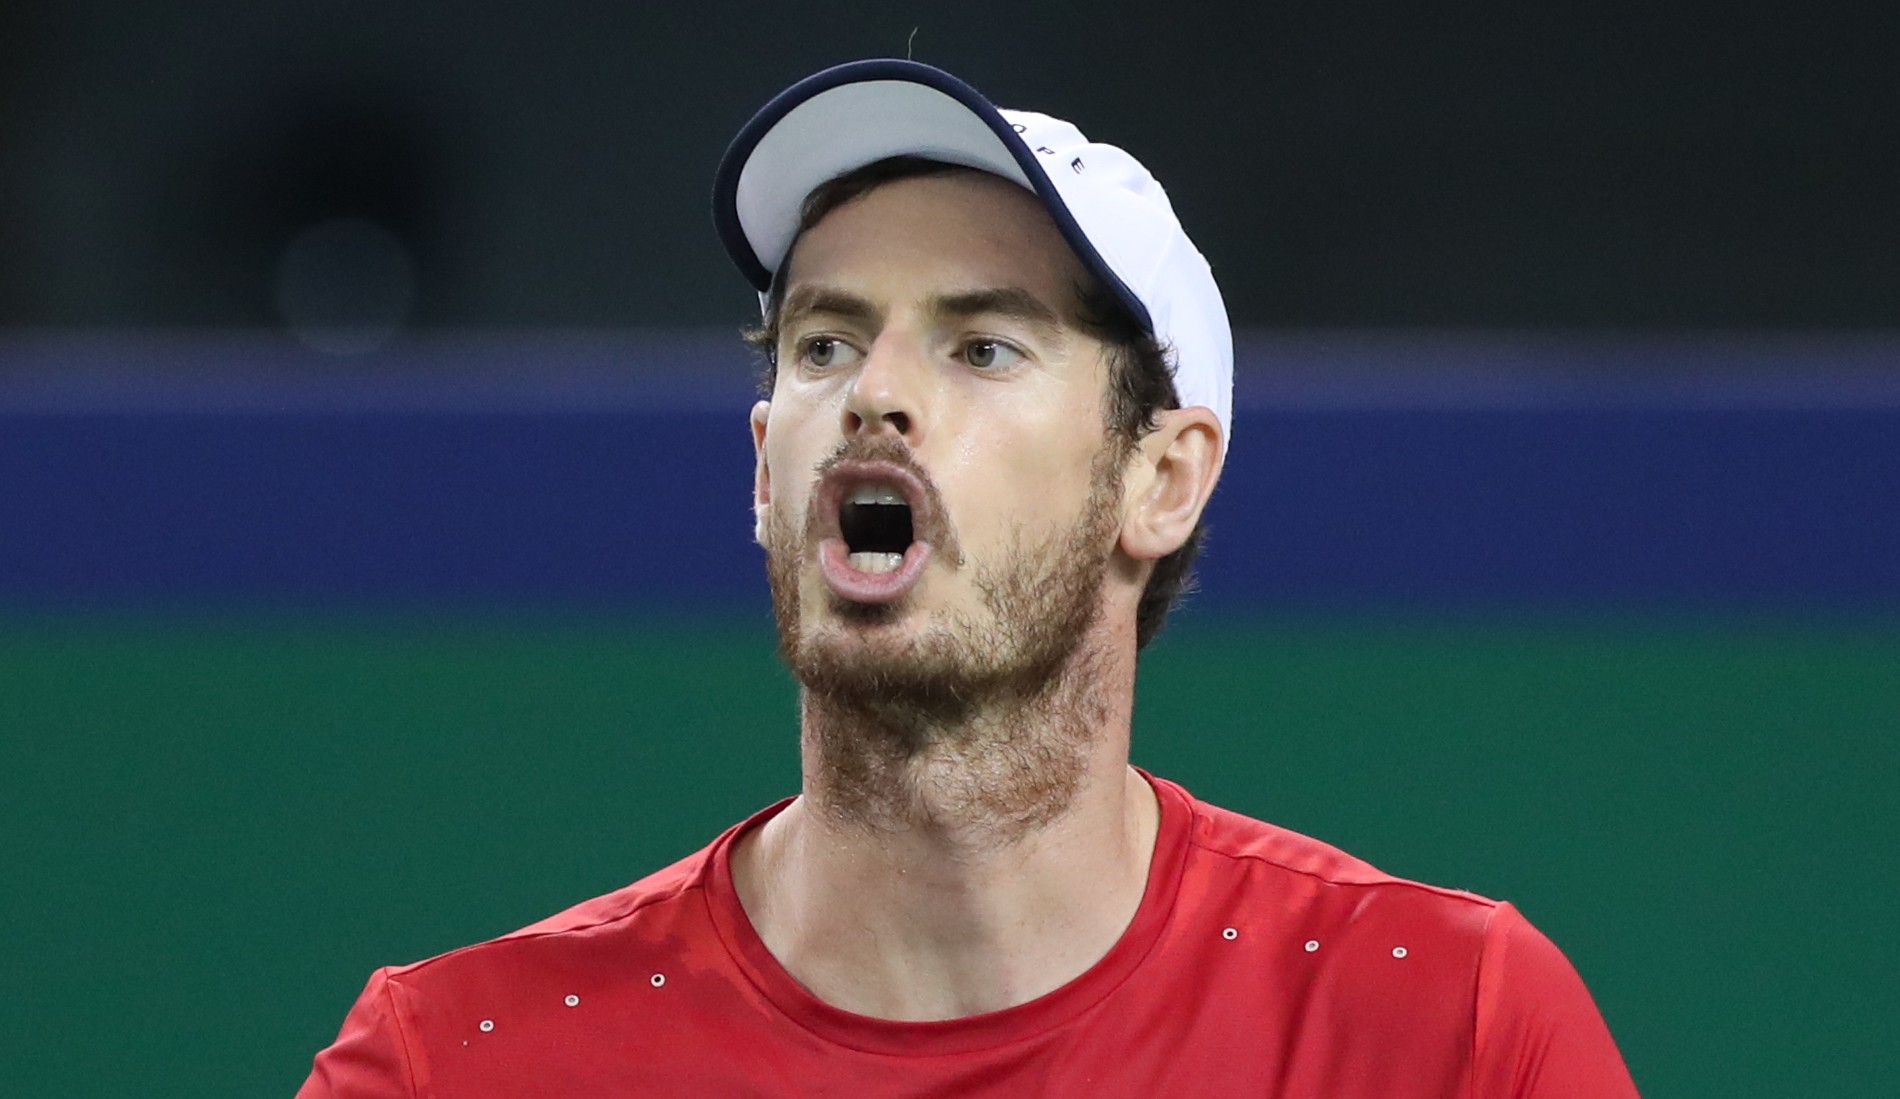 Andy Murray in 2019